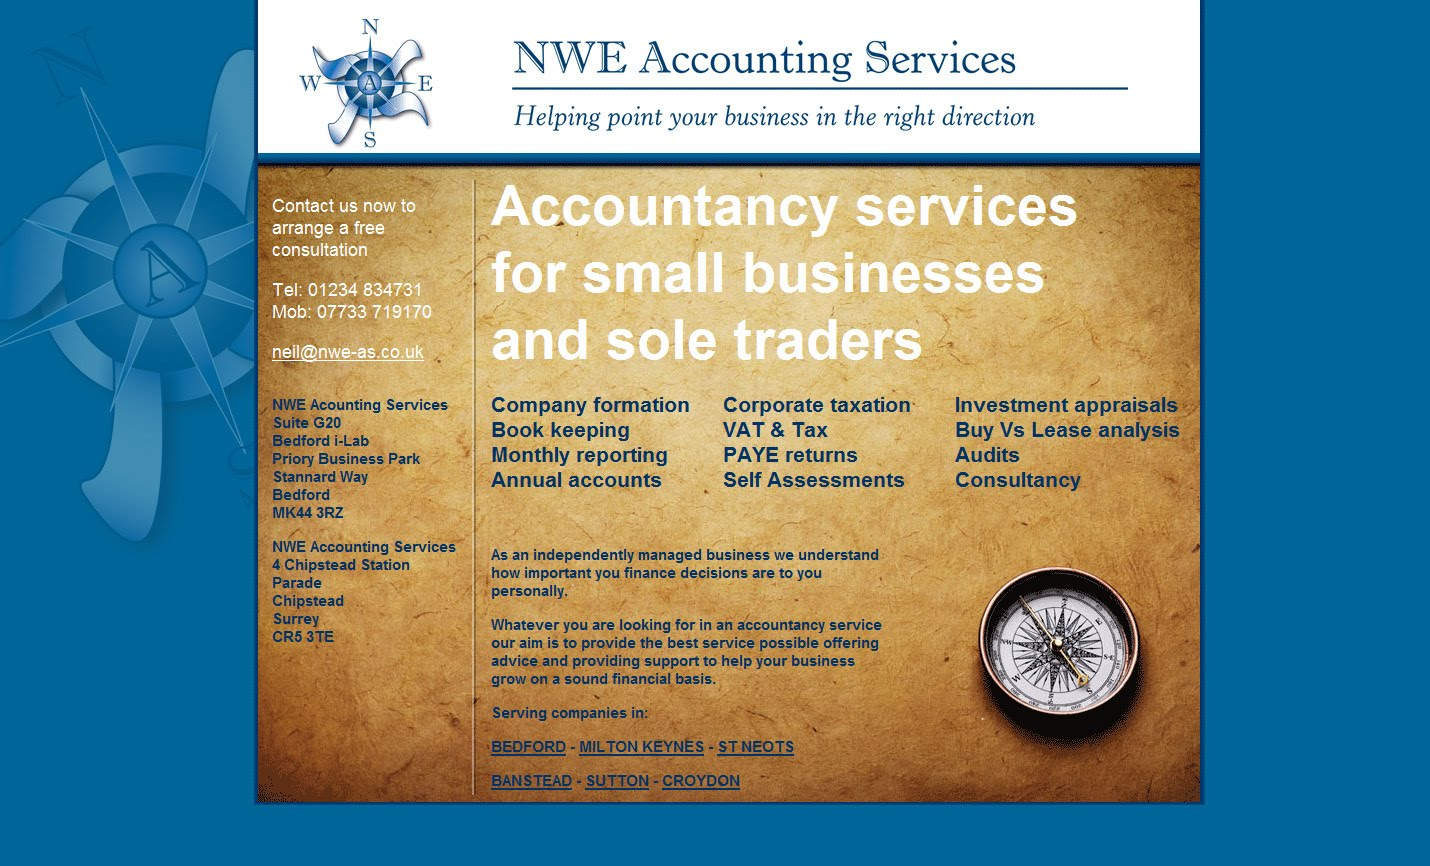 Squadradesign nwe accounting services we have just launched the new website for bedford based accountant nwe as nweaccountant along with their new logo design and business card design reheart Images